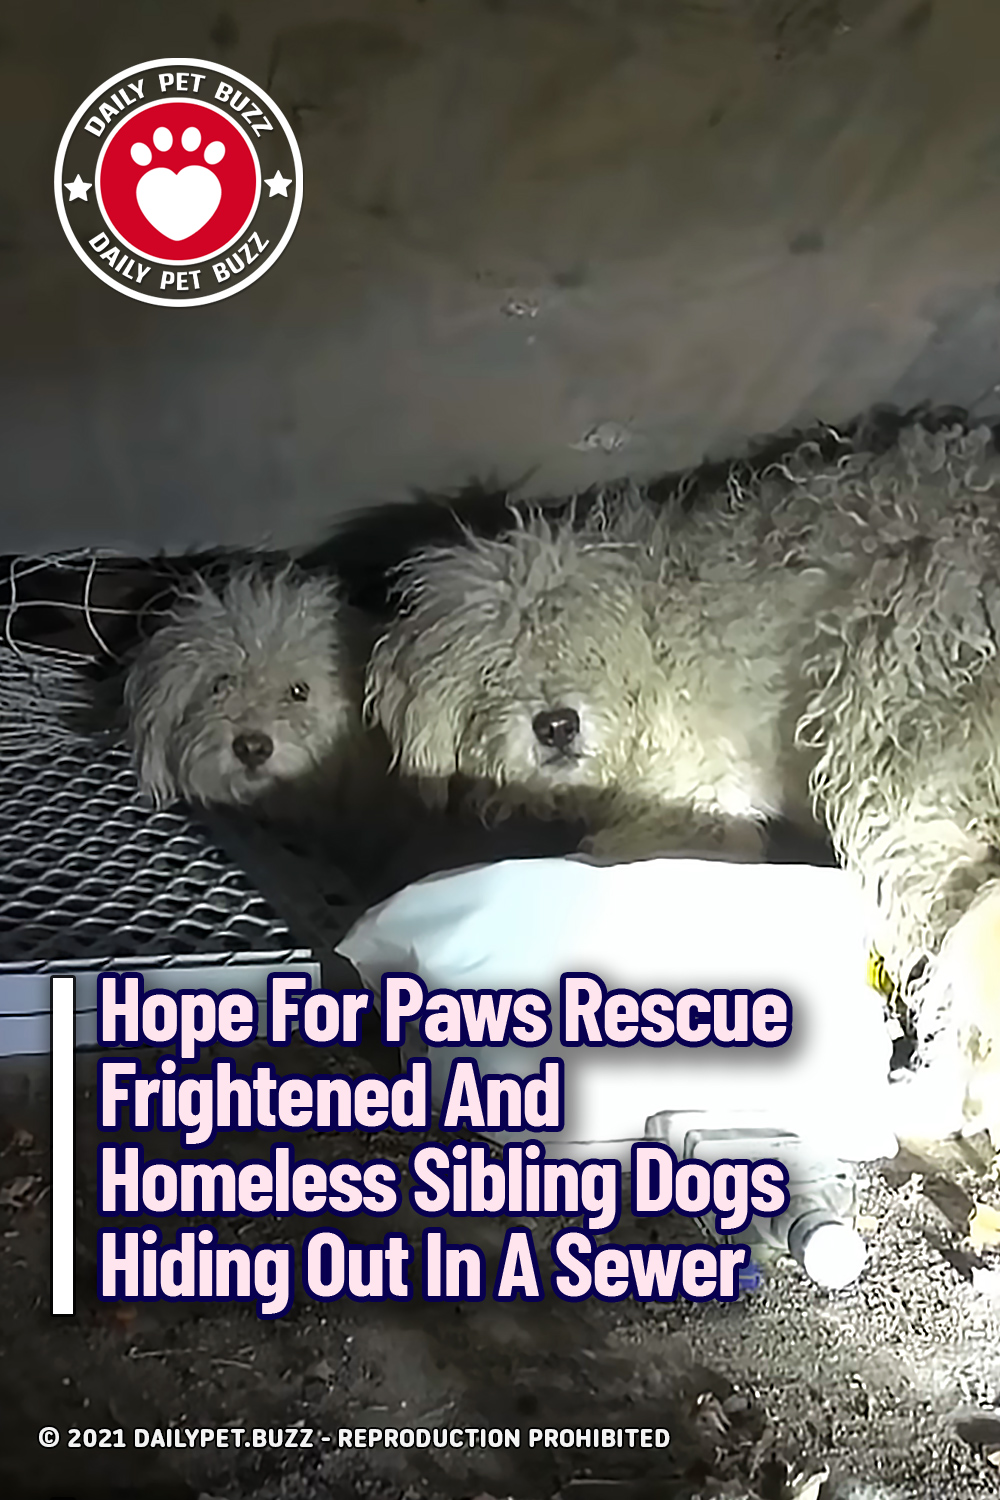 Hope For Paws Rescue Frightened And Homeless Sibling Dogs Hiding Out In A Sewer